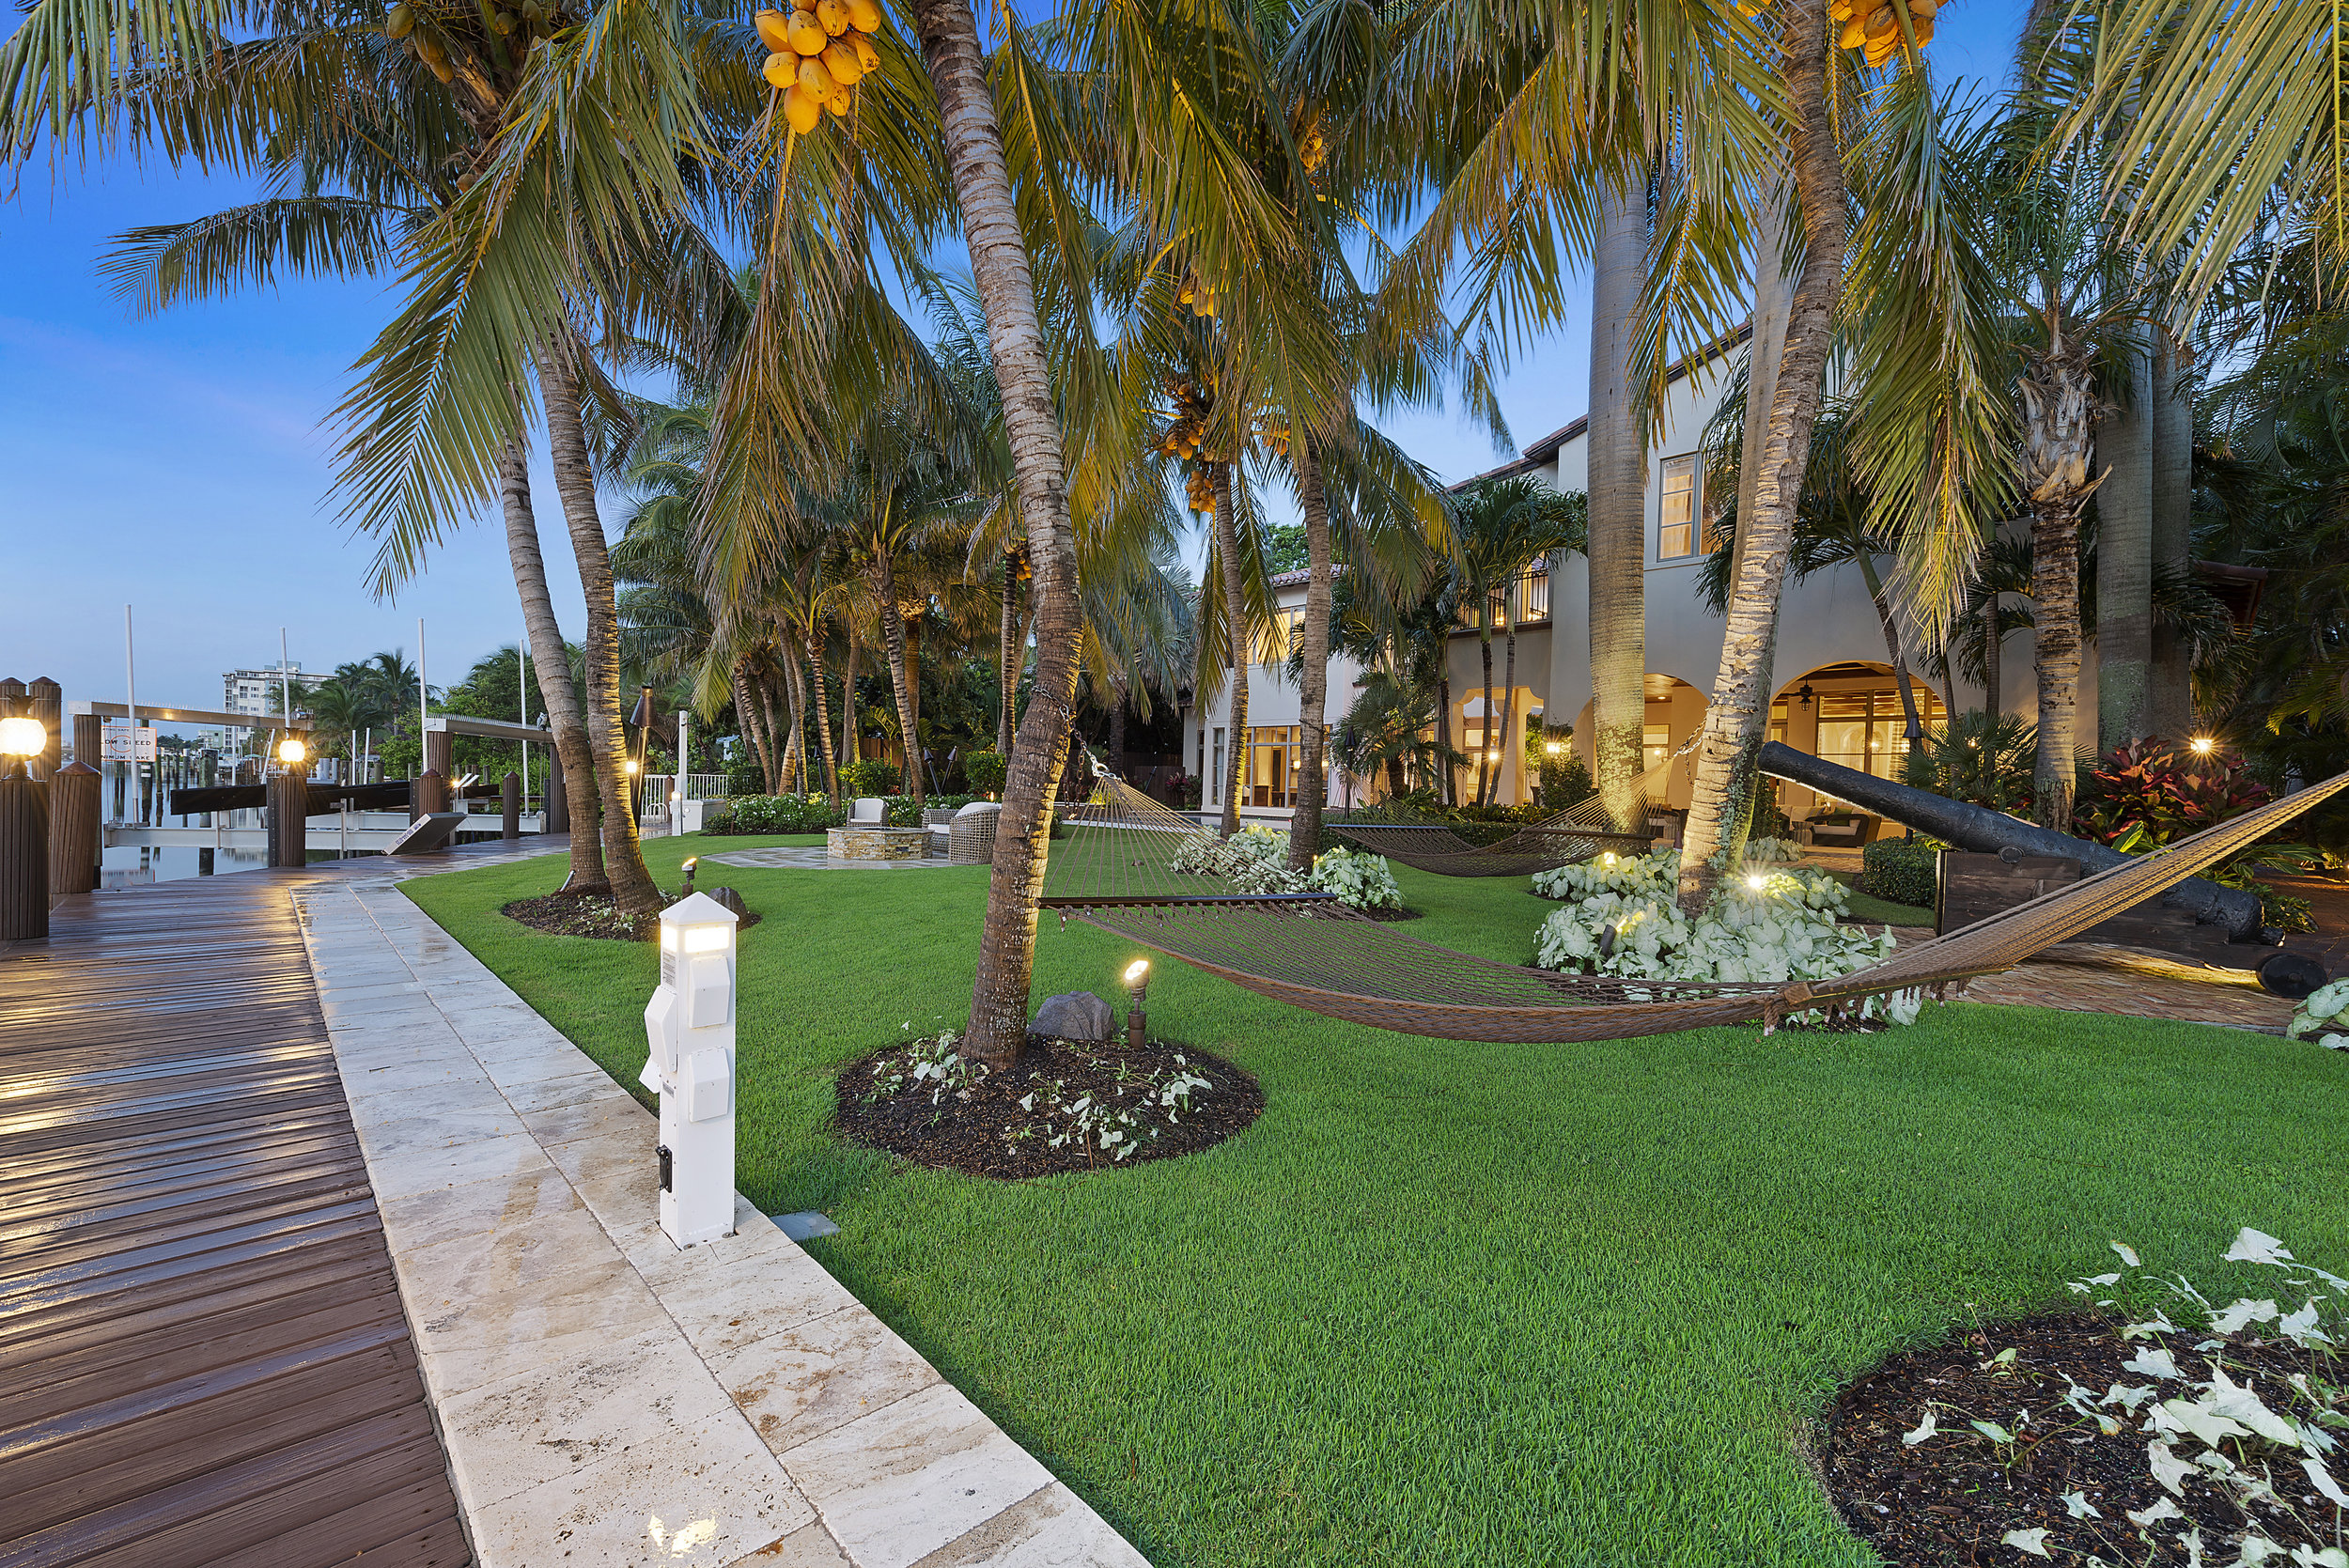 Step Inside Delray Beach's Newest $13 Million Waterfront Listing Complete With A Ferrari & Midnight Express